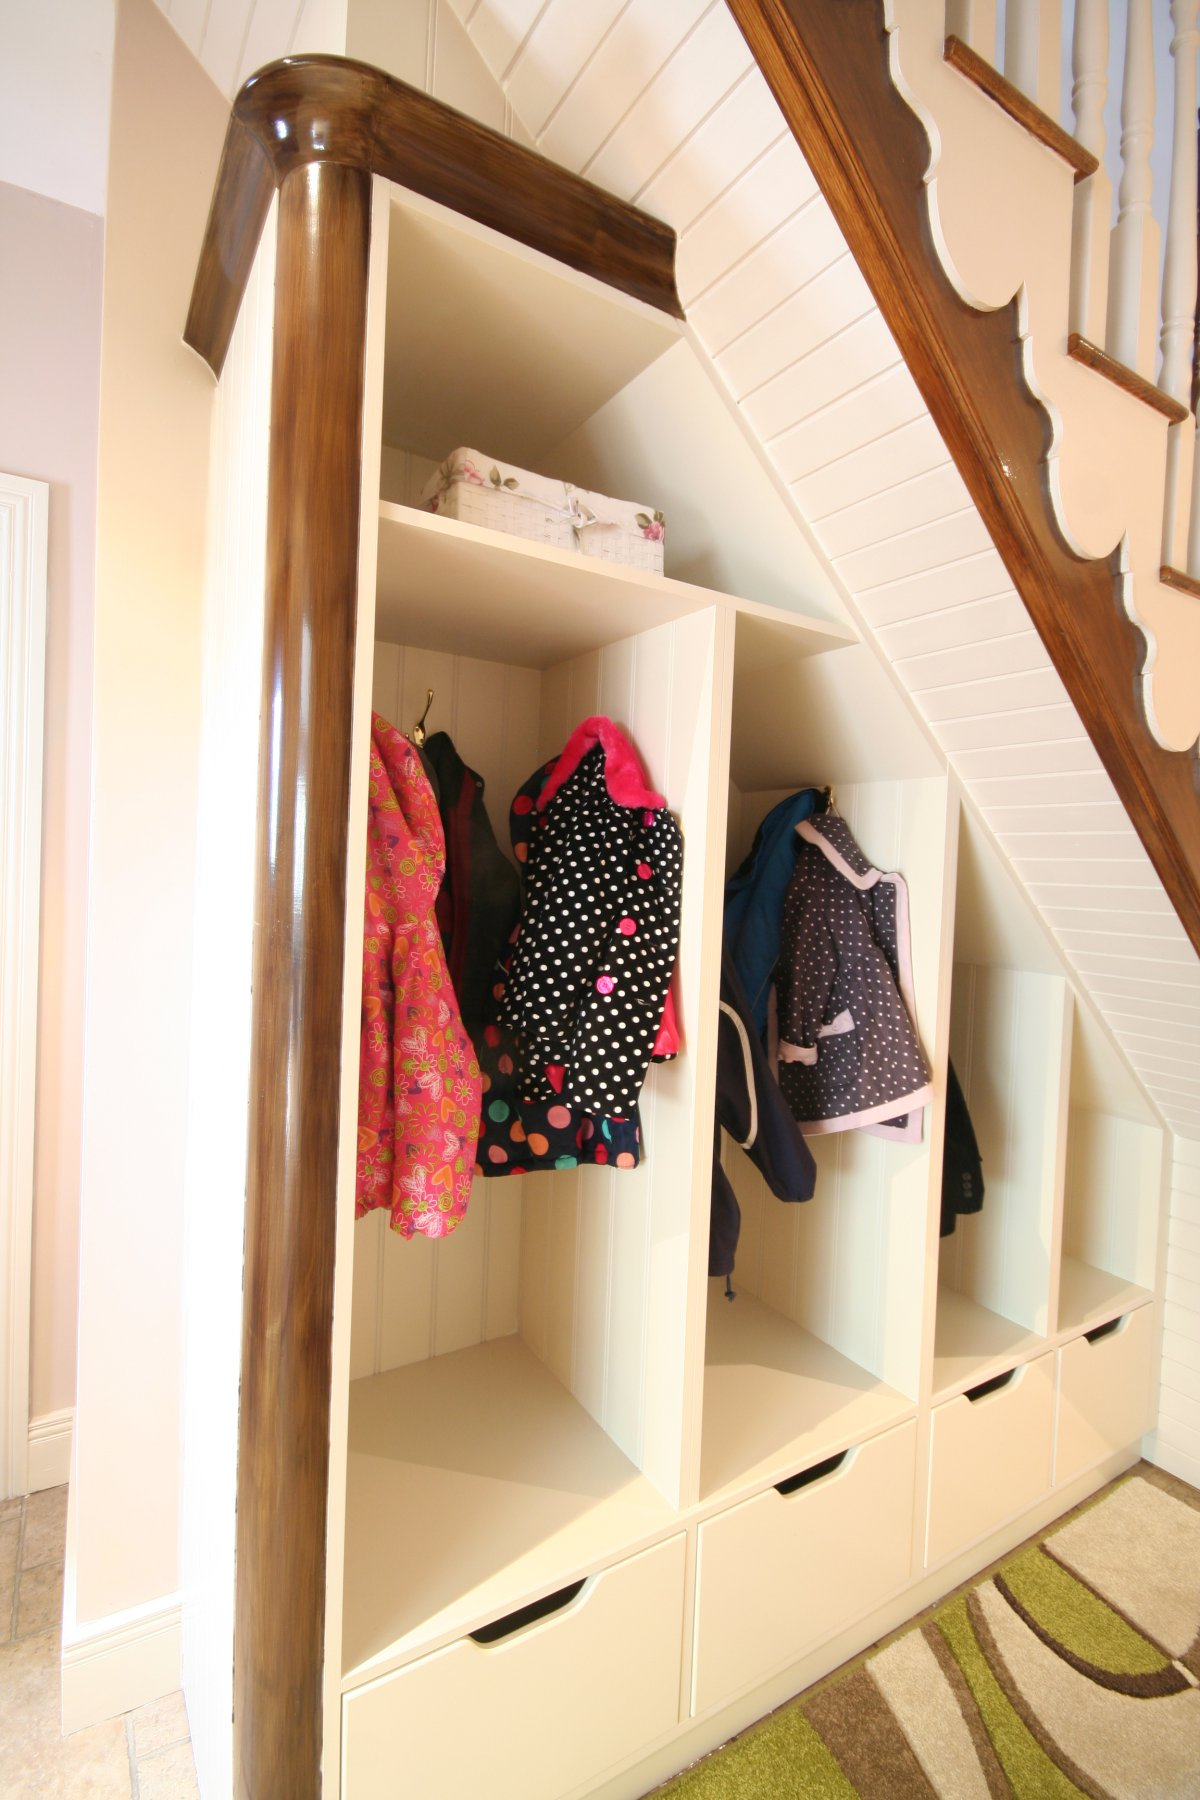 Bespoke Under Stairs Shelving: Bespoke Storage Unit Under Stairs